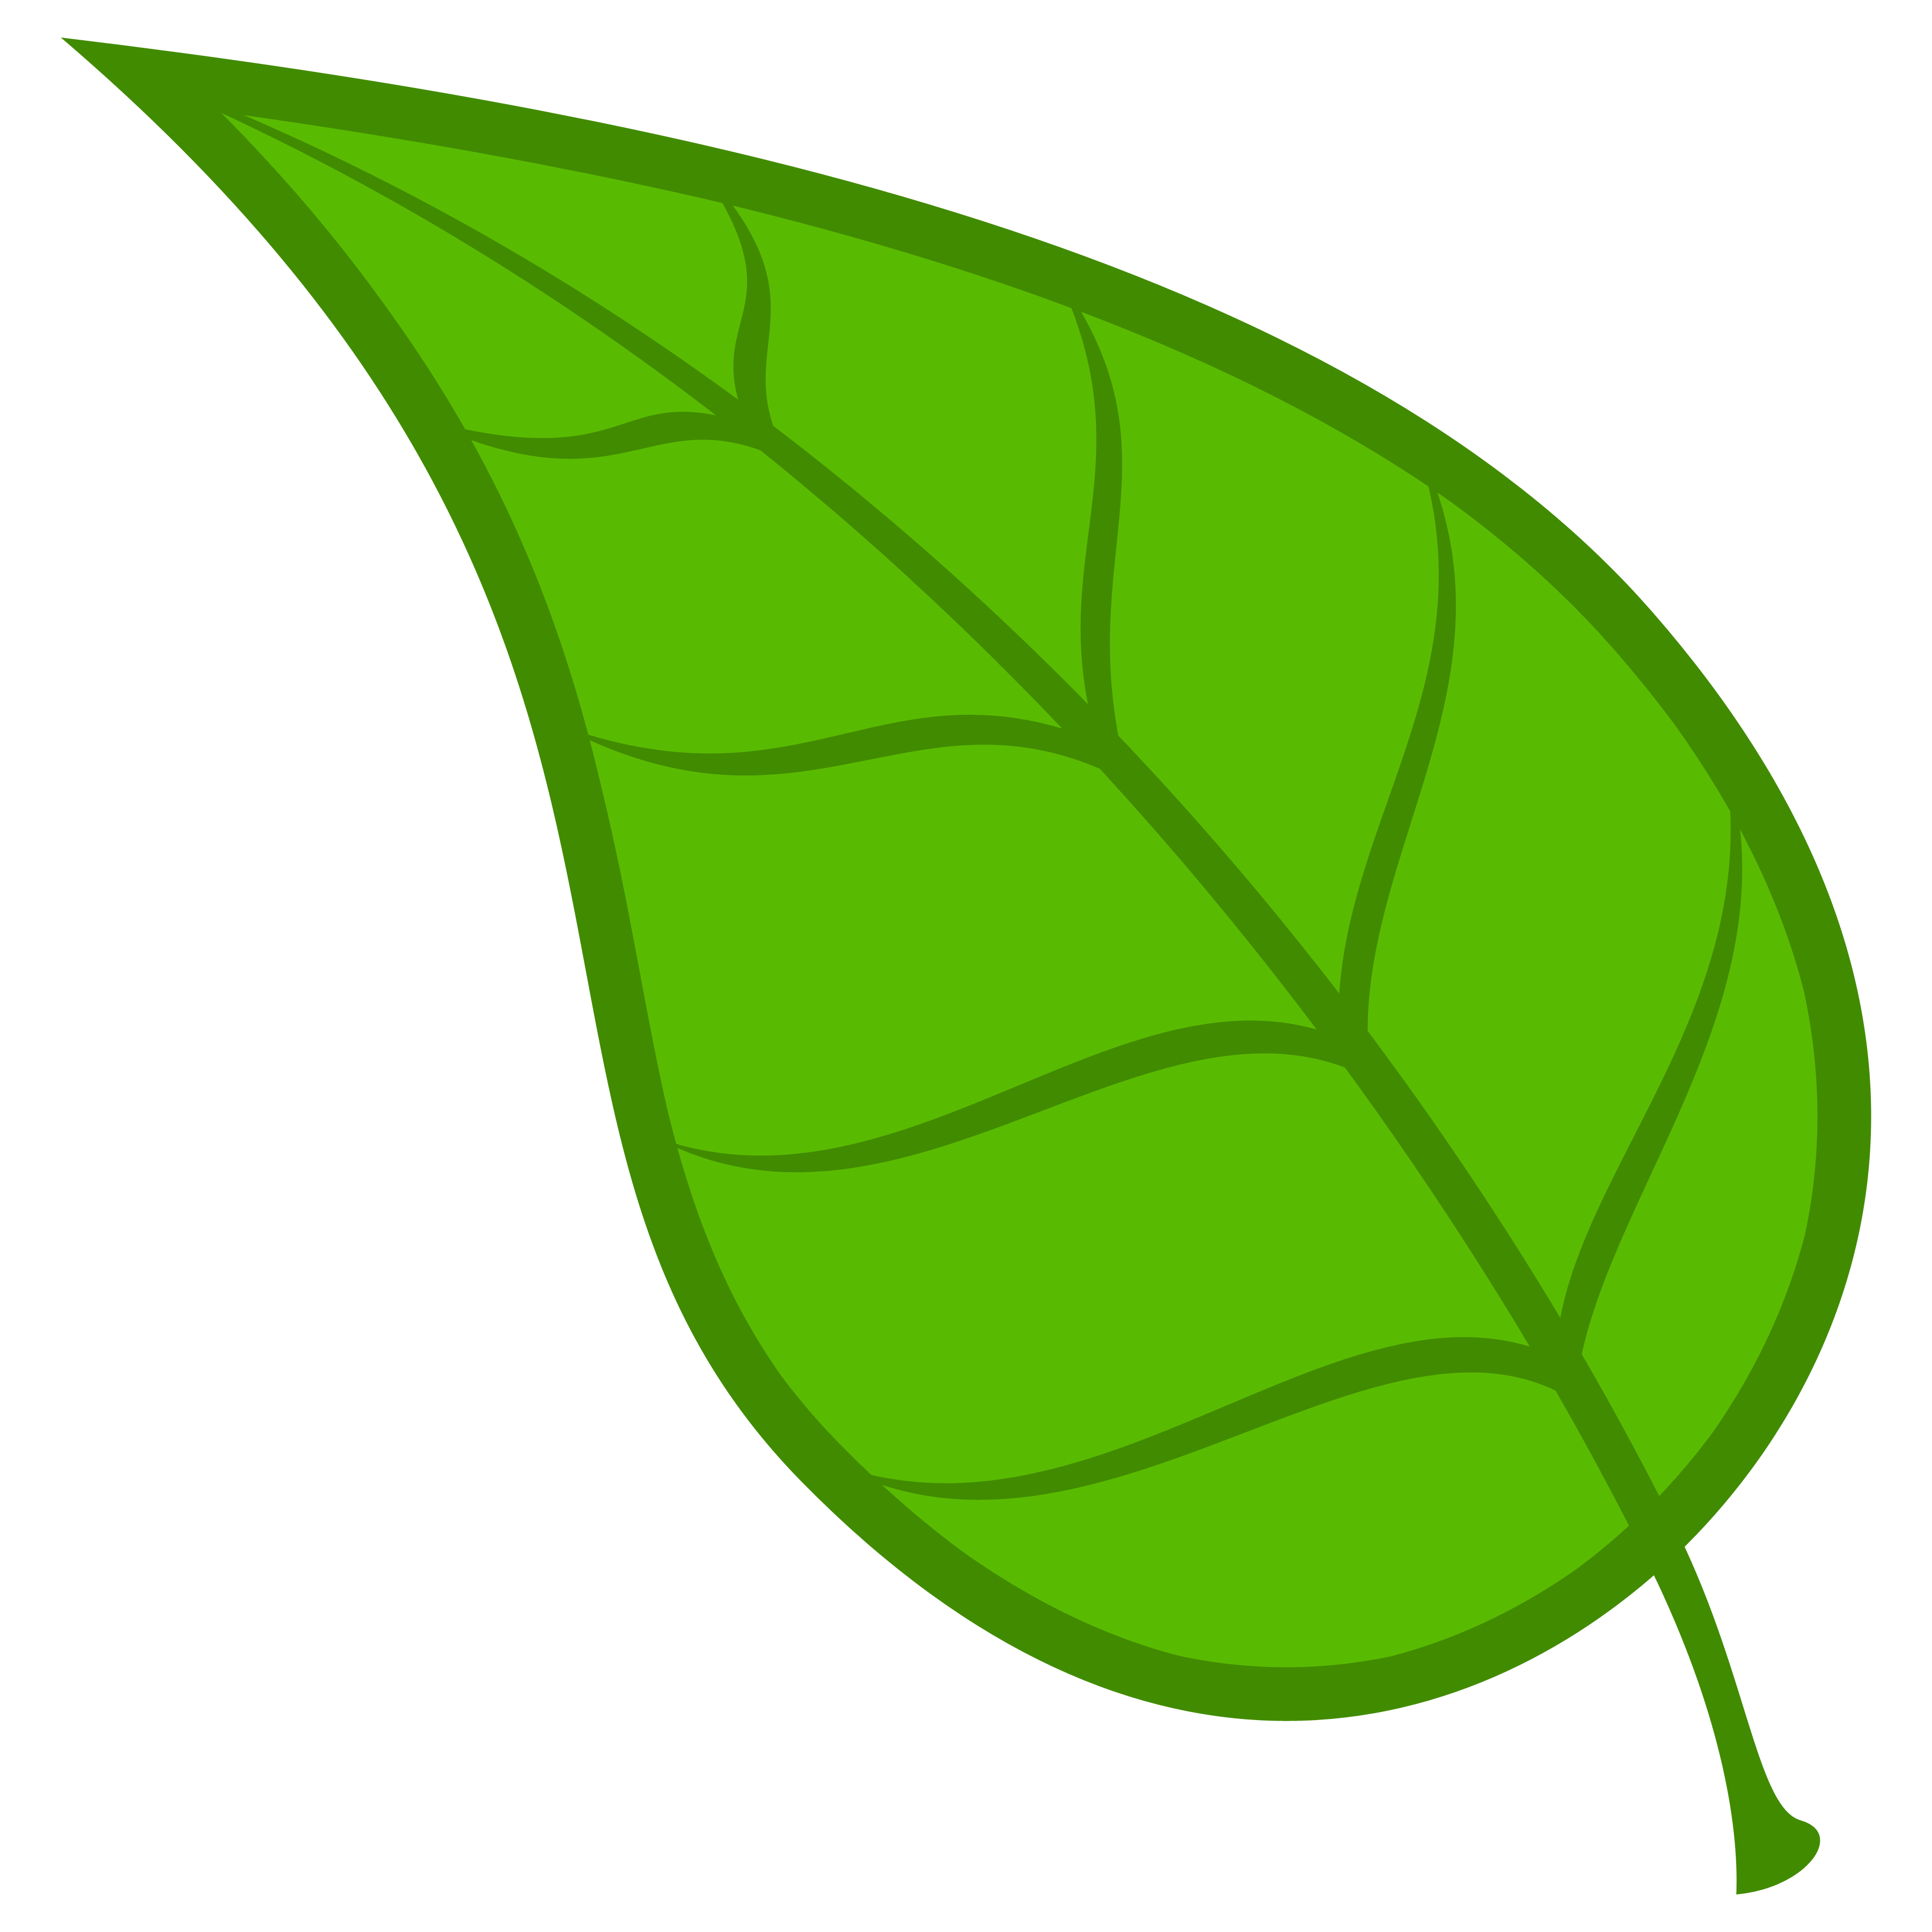 green leaf clipart